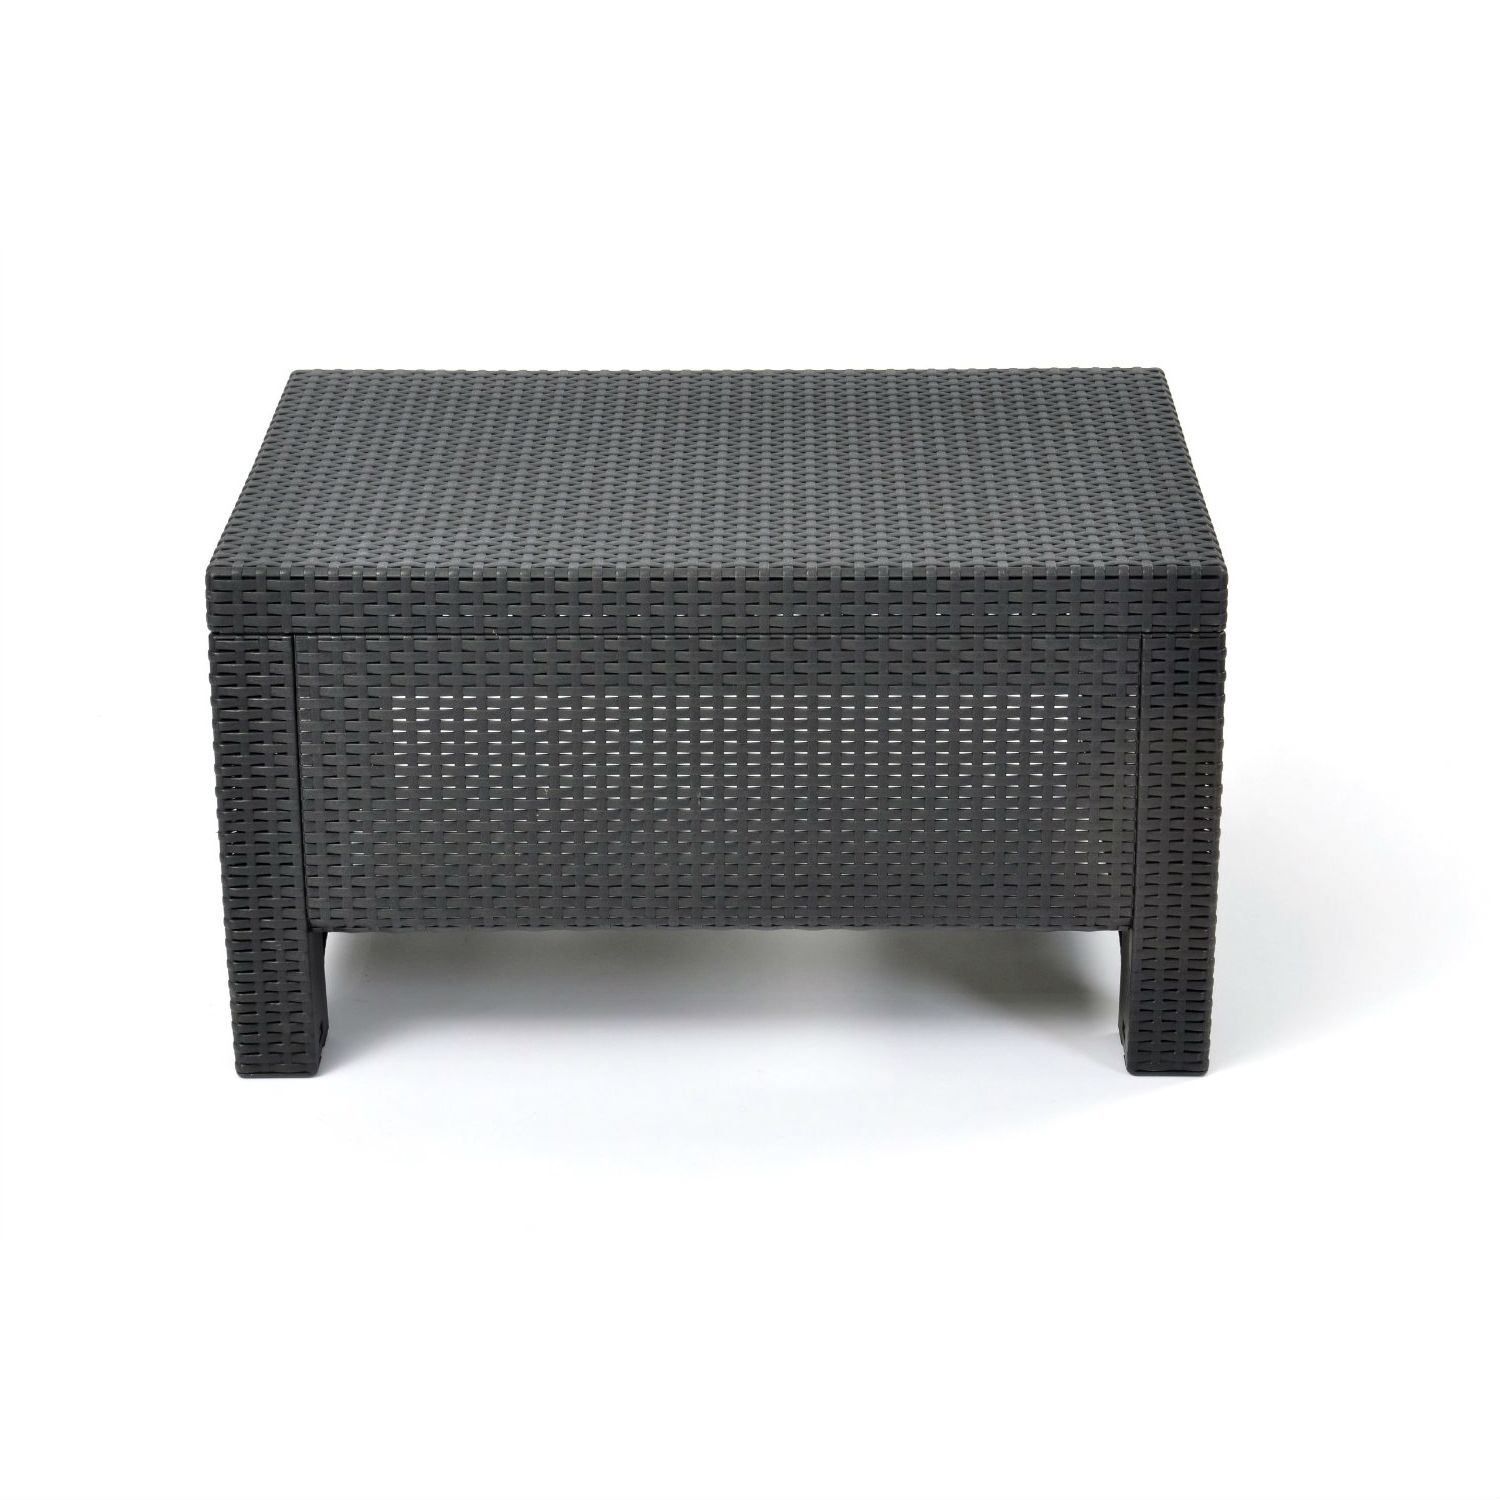 Rattan Table Contemporary Outdoor Coffee Table In Durable Black Plastic Rattan